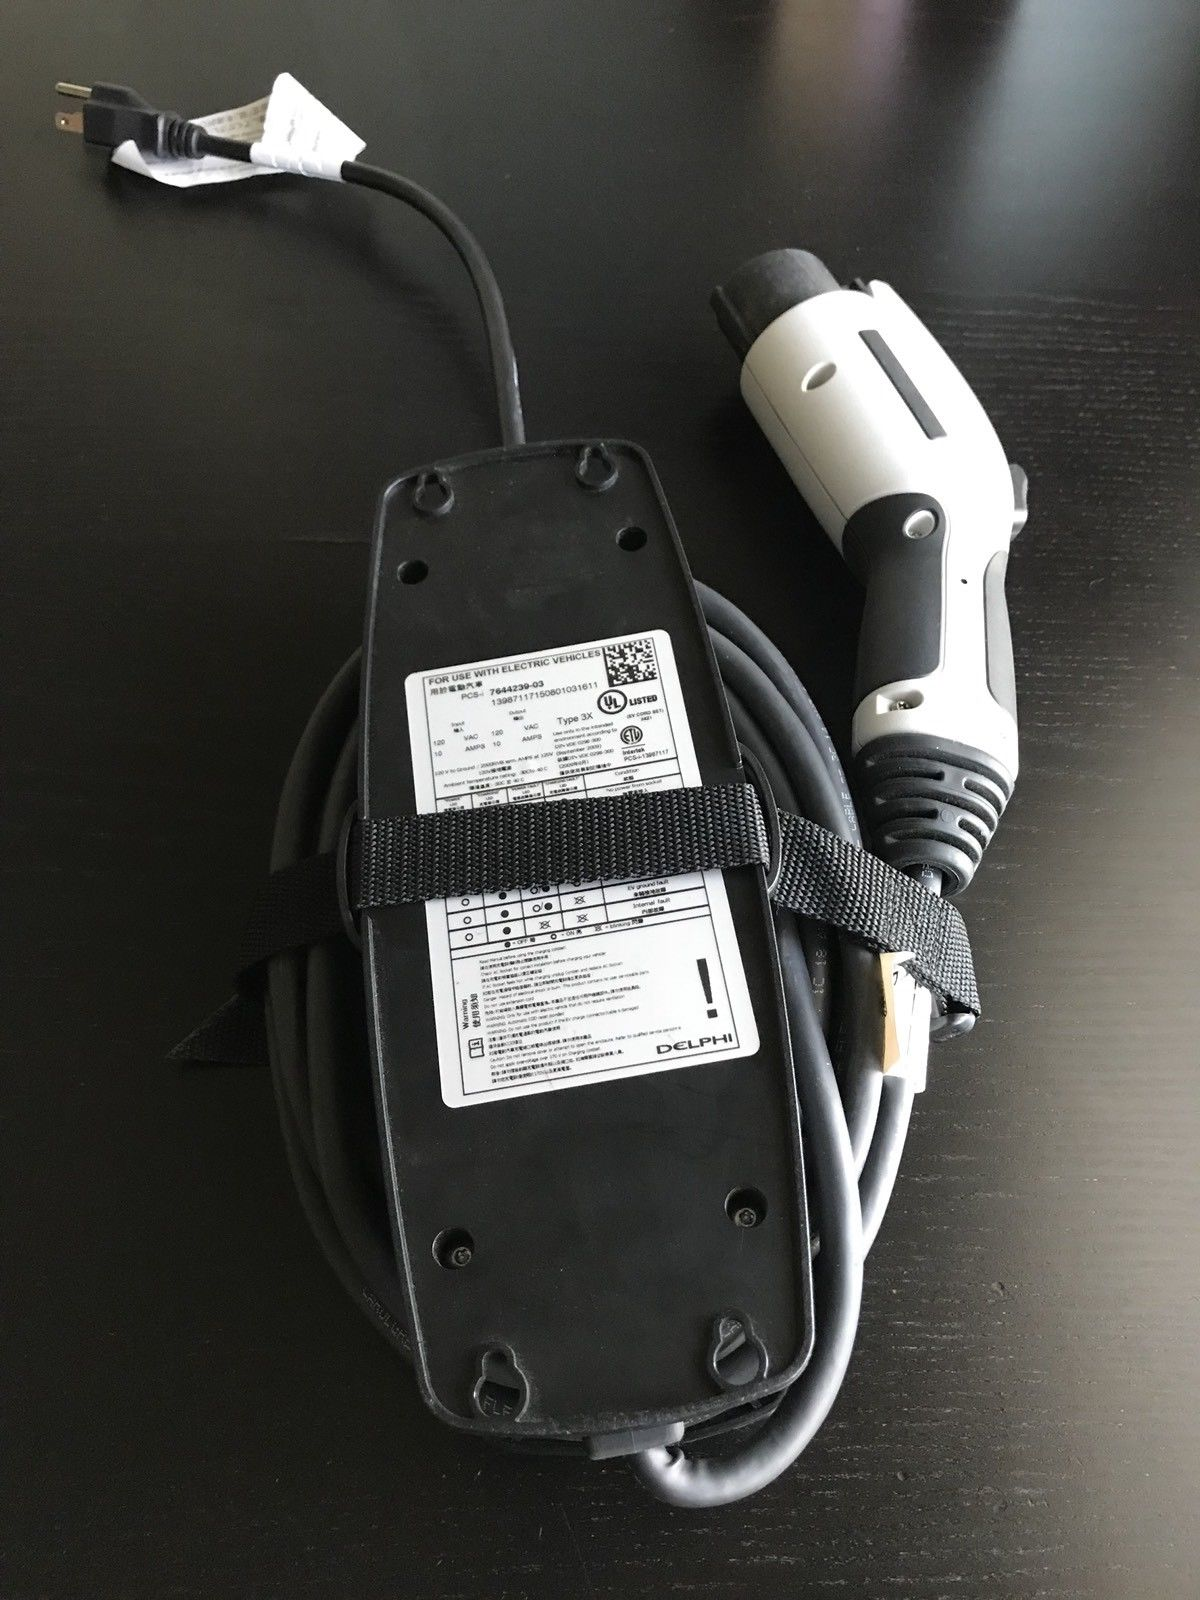 Amazing Bmw I3 I8 I 3 Electric Car Battery Ev Charger Plug In 120v 12a 7644239 03 2018 2019